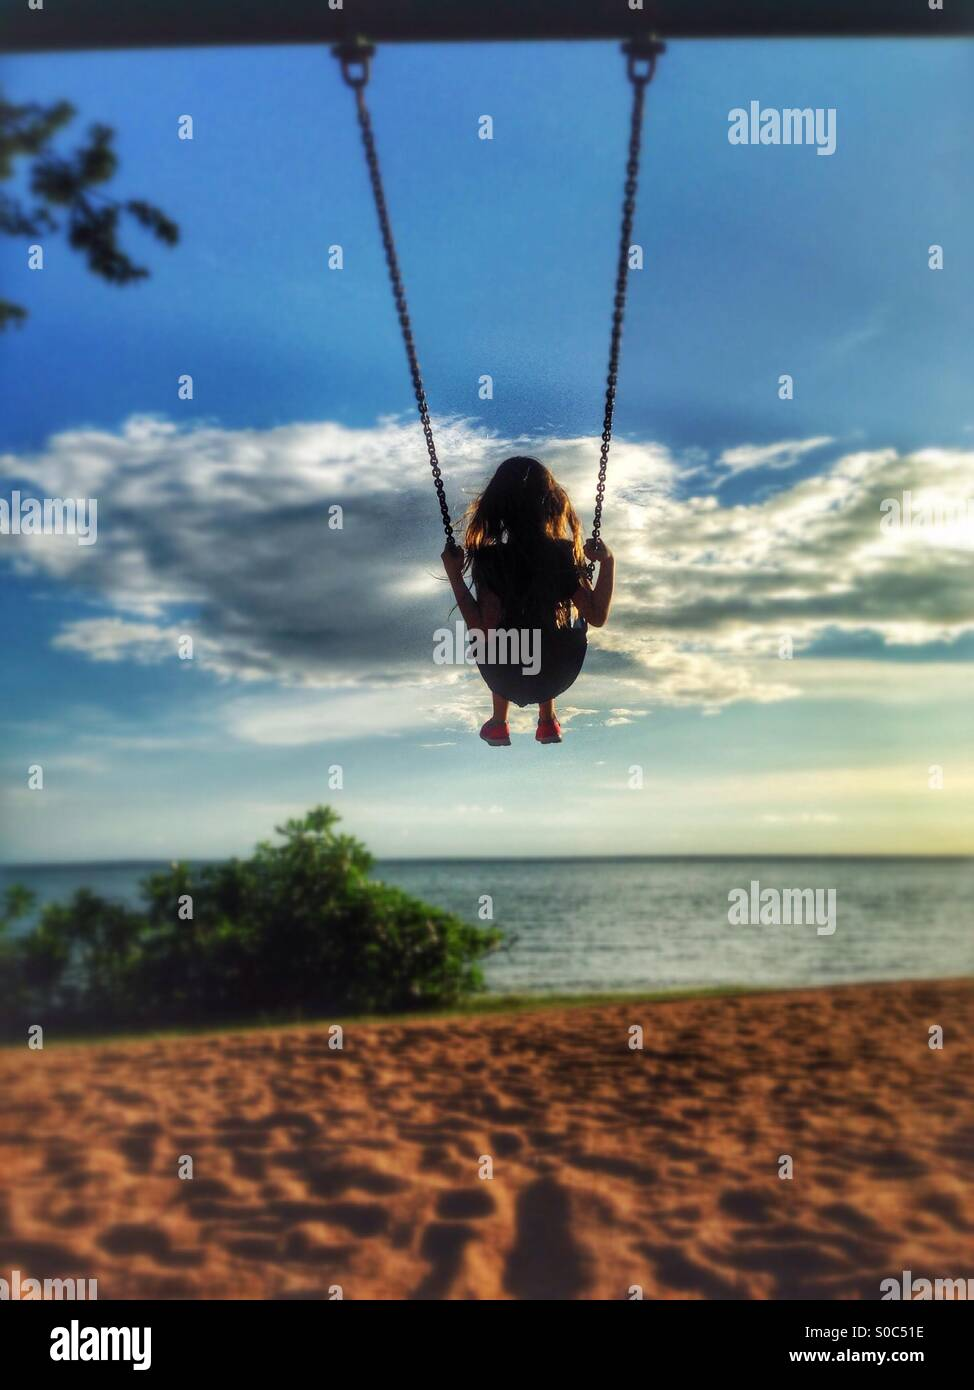 Little girl on a swing, at the beach. - Stock Image